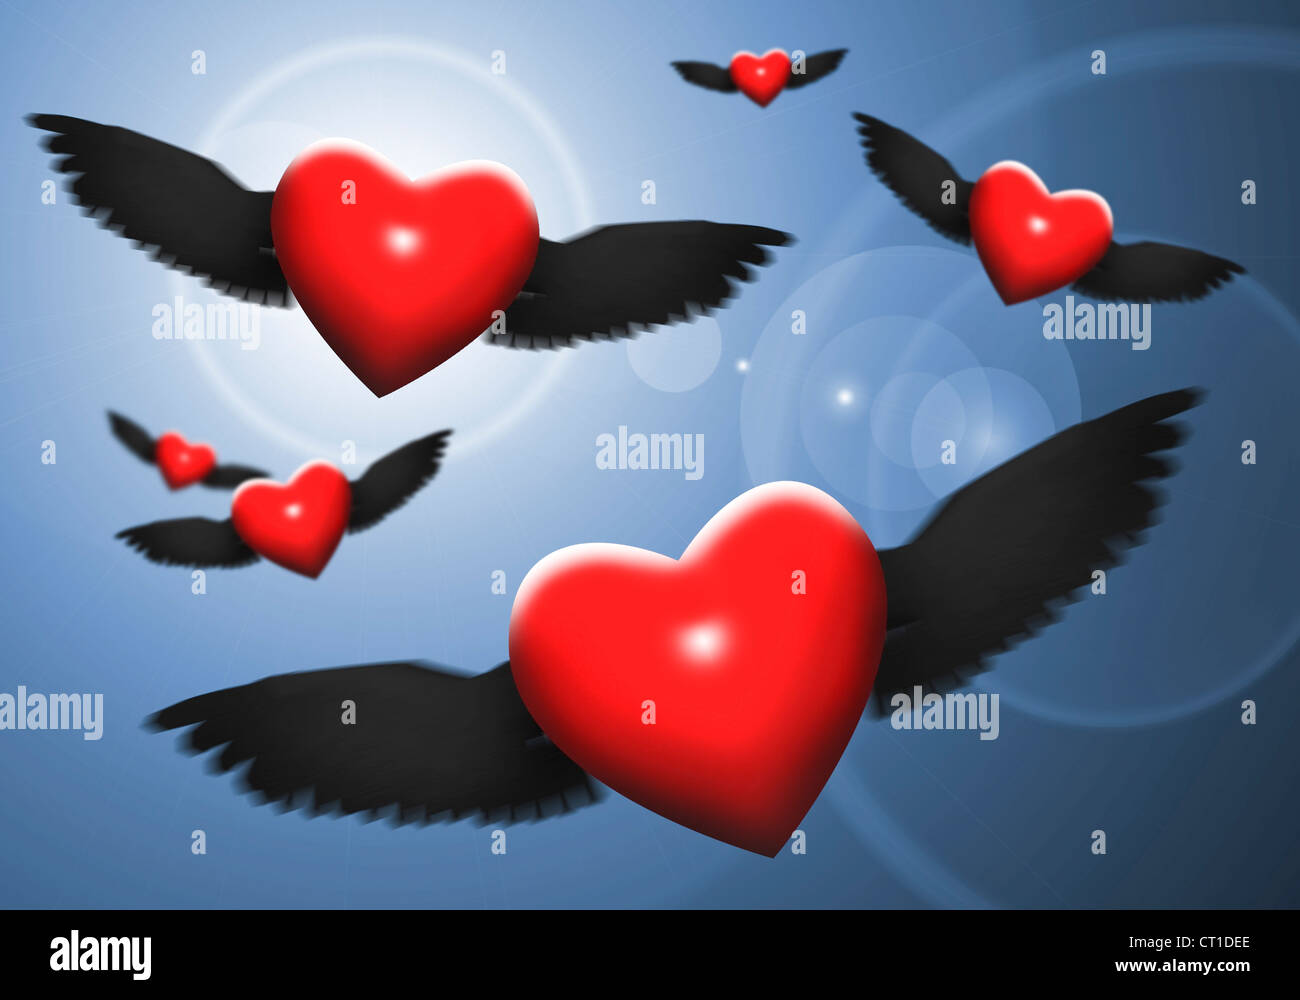 red hearts with wings in the night sky Stock Photo